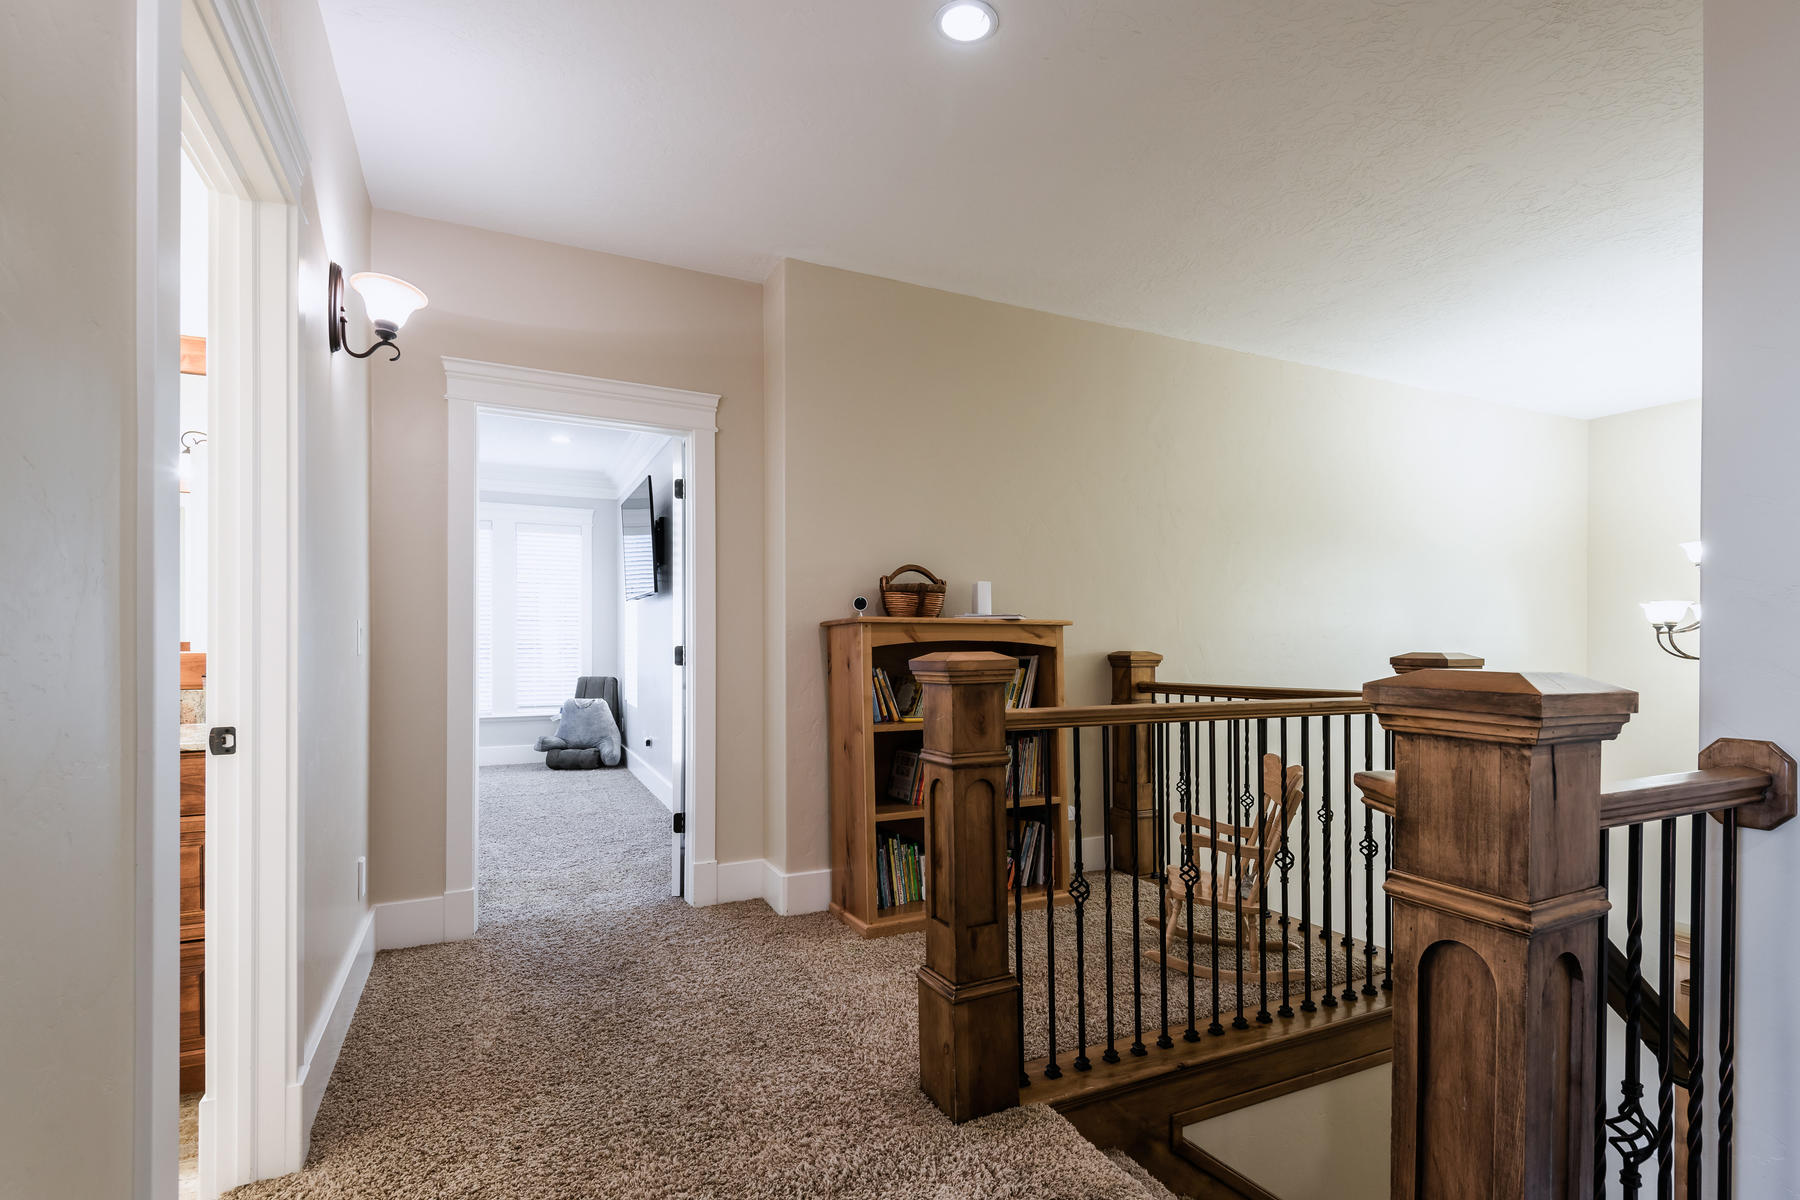 Additional photo for property listing at Beautiful Home on the East Bench of Provo 4565 North 475 East, Provo, Utah 84604 United States